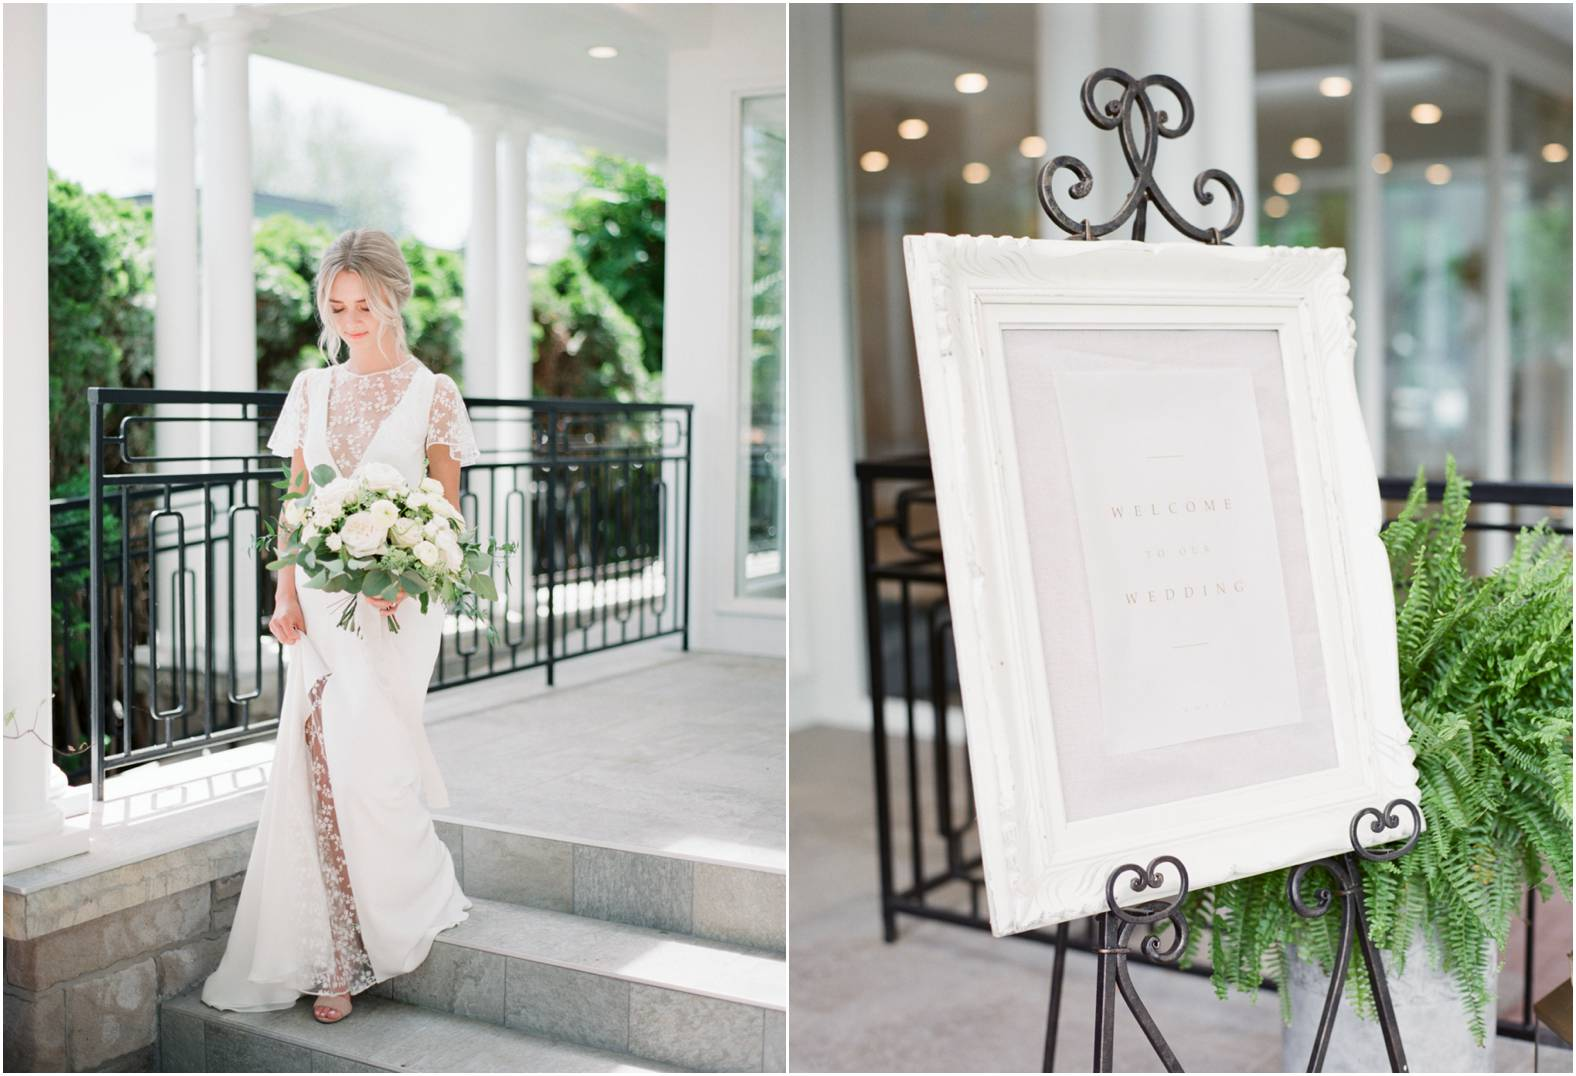 Bride wearing lace dress holds a neutral bouquet as she walks down the steps of her garden wedding at The Gate house, Niagara on the Lake